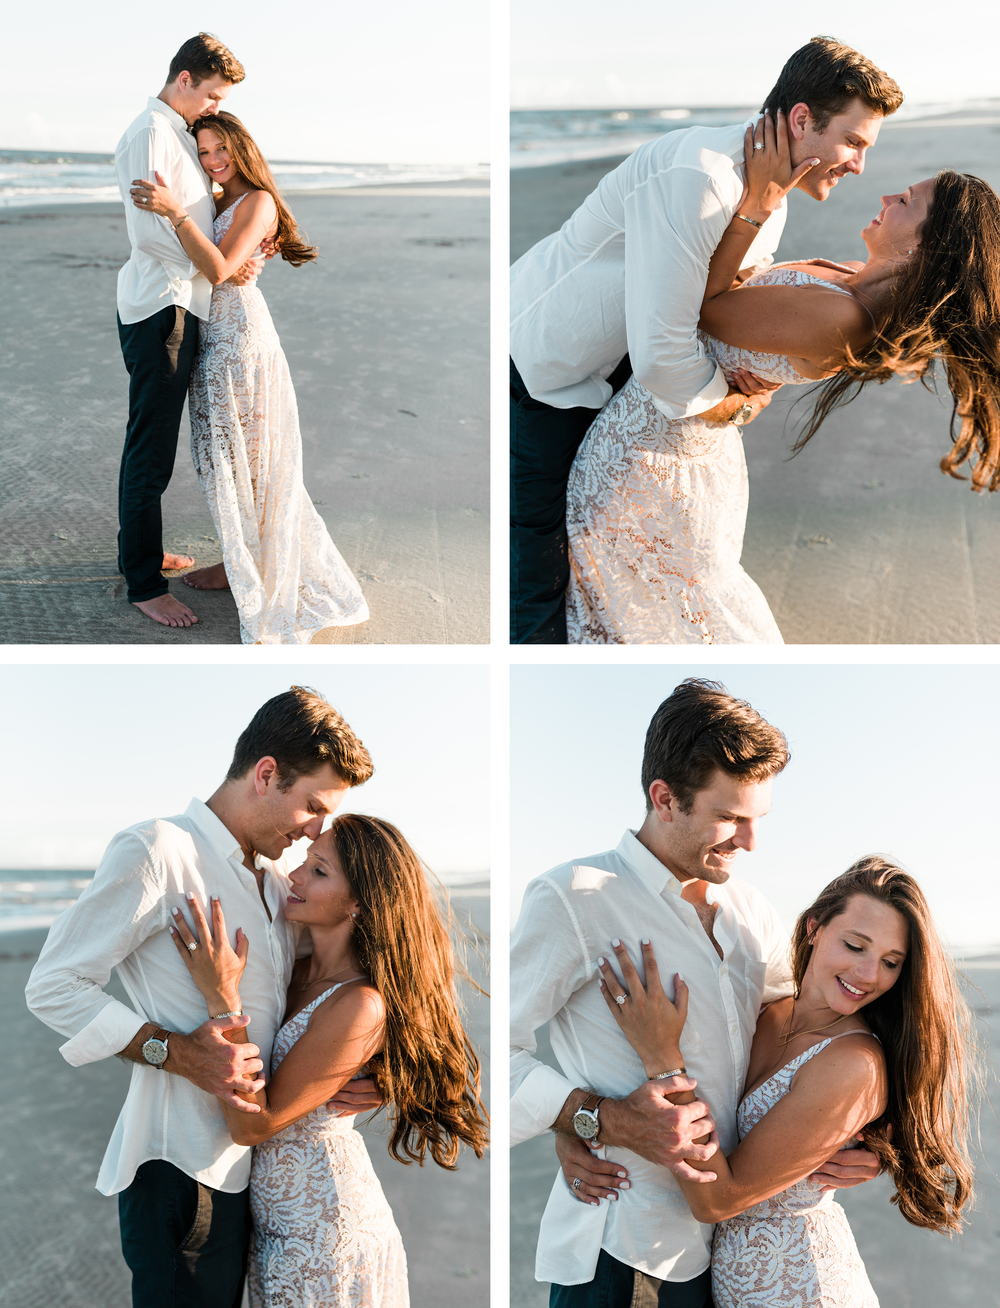 Evan Haley Engagement_Pawleys Island SC_Kristen Paige Photography_Gallery 11.png